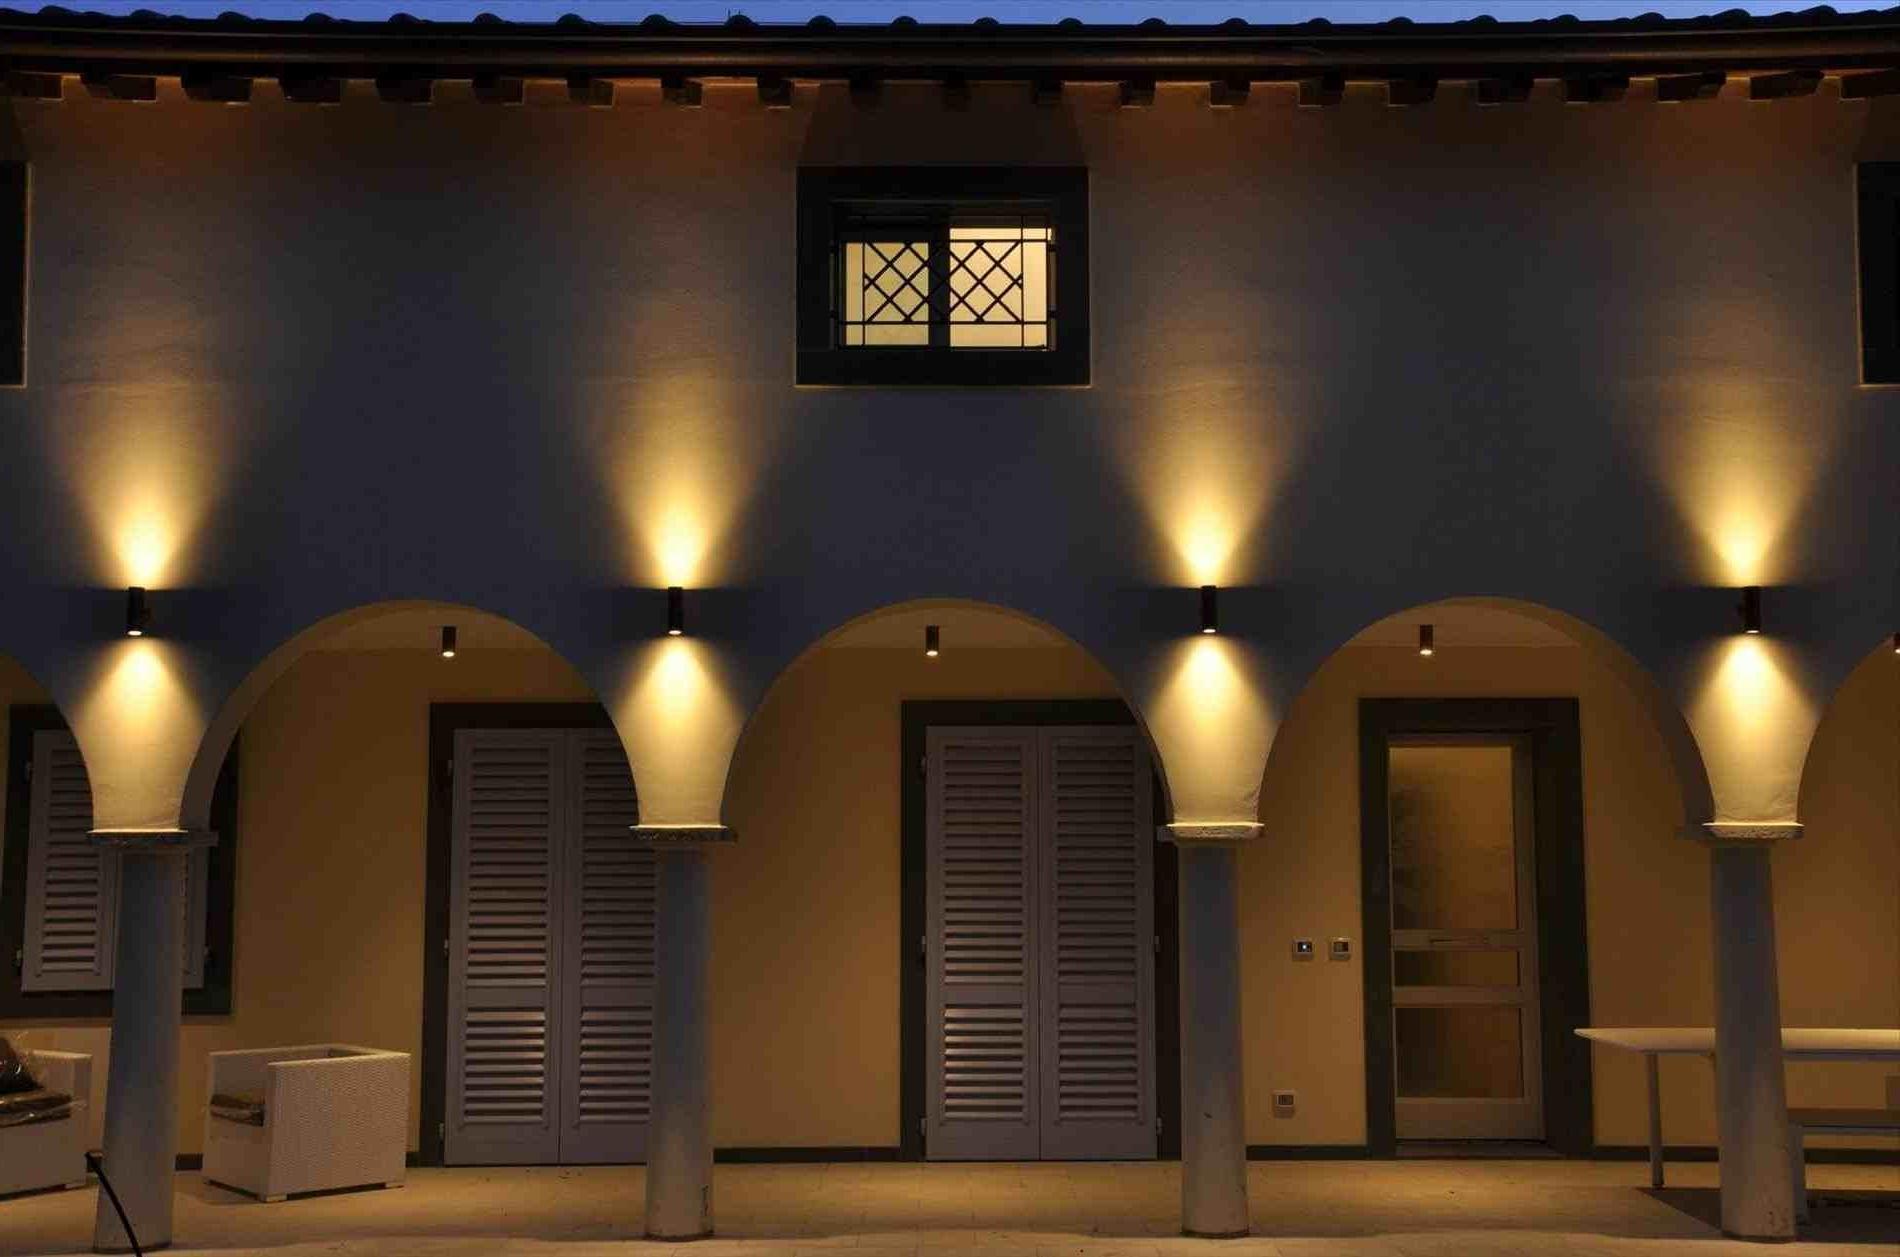 Popular Up And Down Outdoor Wall Lighting In Wall Up Down Outdoor Wall Lights Lights Design (View 12 of 20)